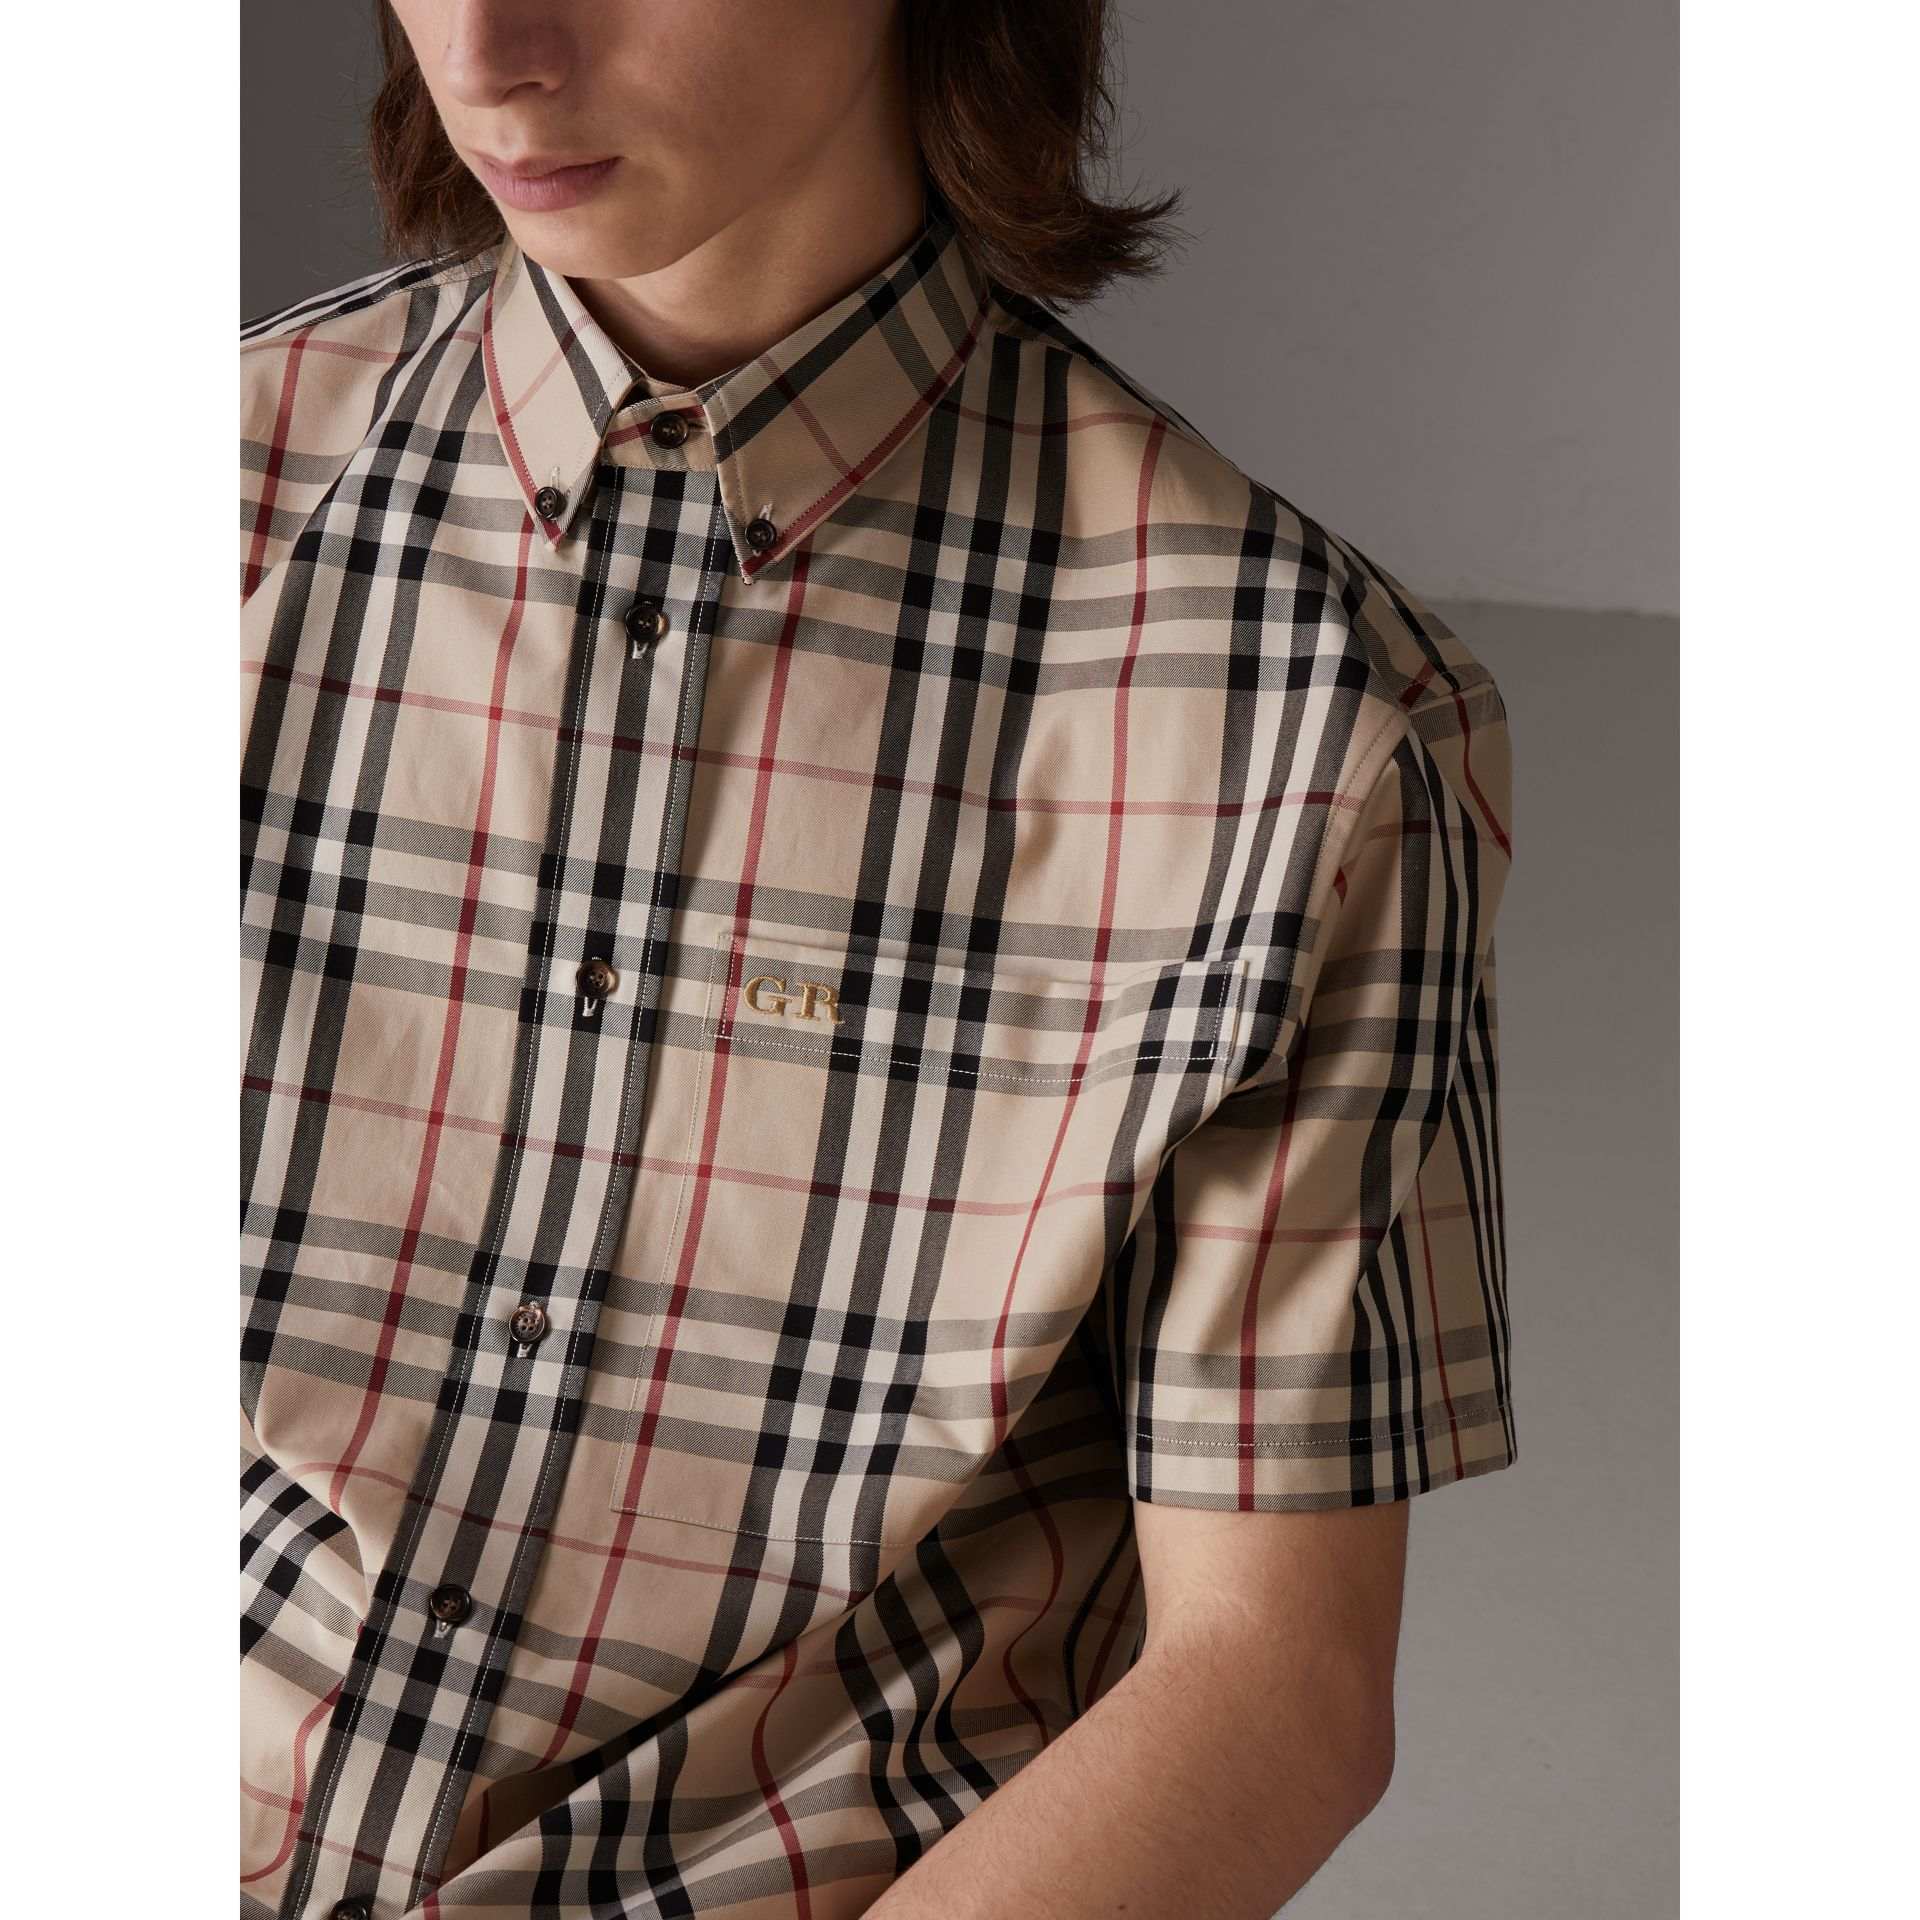 Gosha x Burberry Short-sleeve Check Shirt in Honey | Burberry United States - gallery image 1